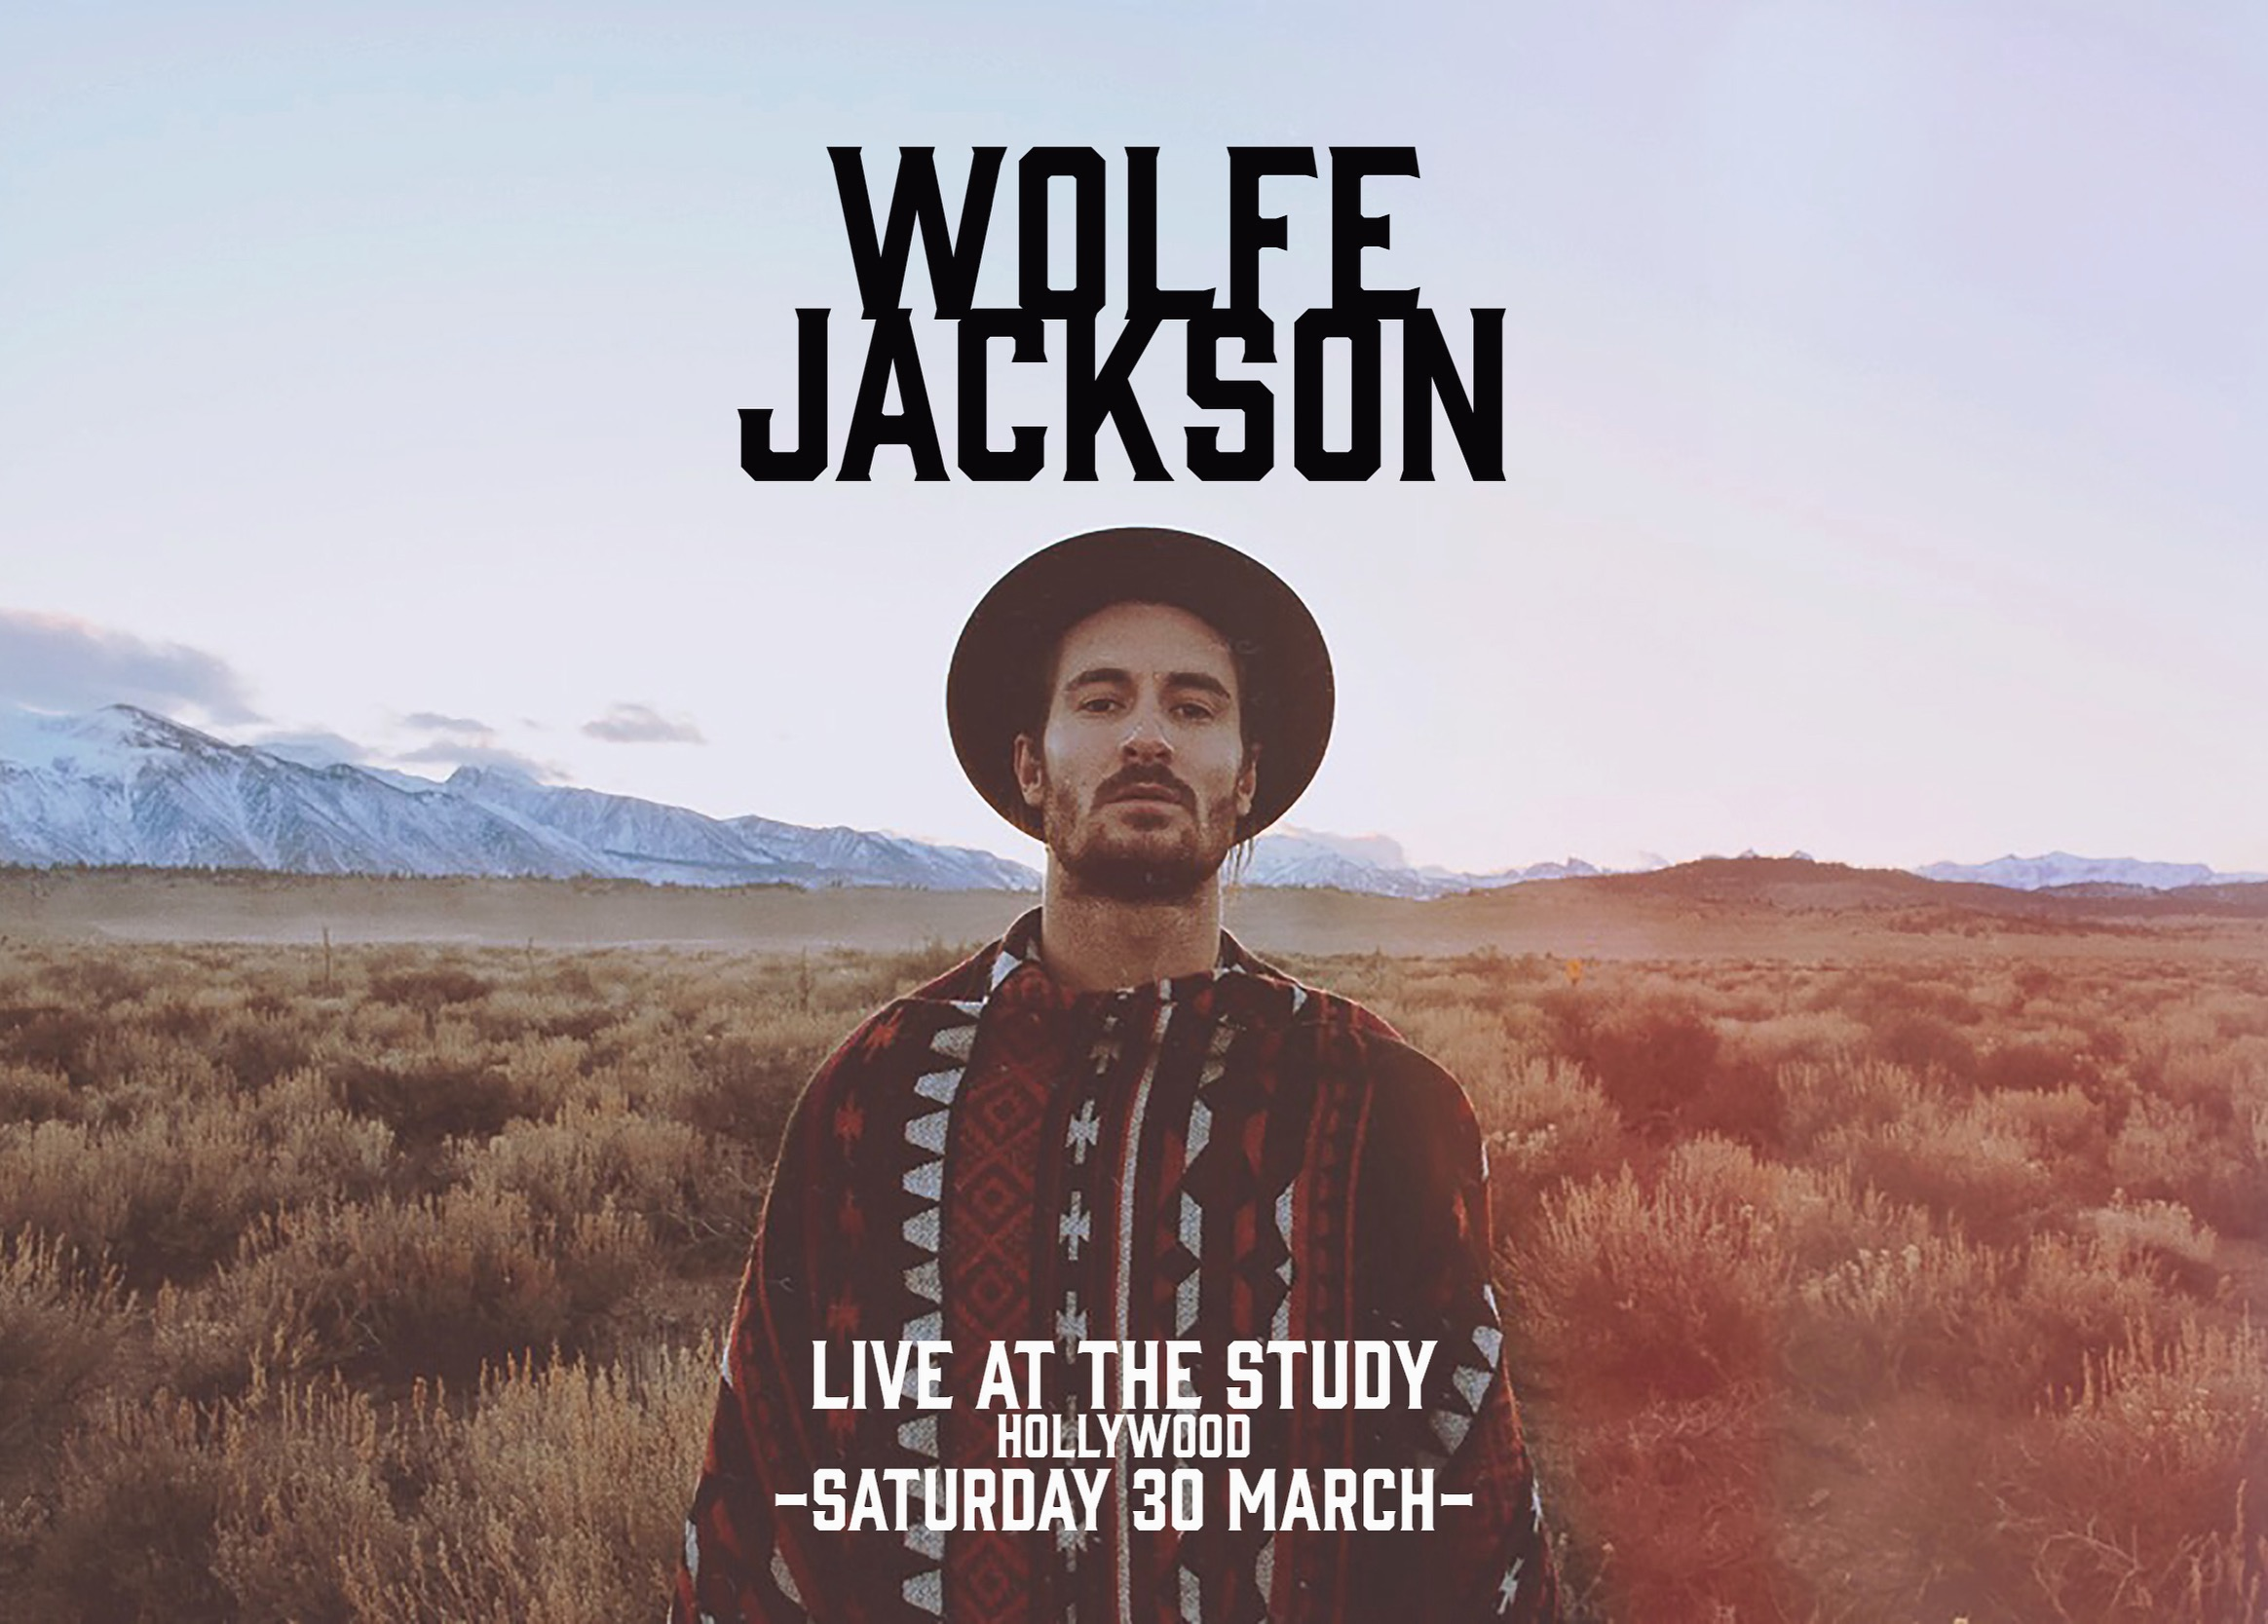 WOLFE JACKSON - LIVE @ THE STUDY, HOLLYWOOD - MARCH 30, 2019